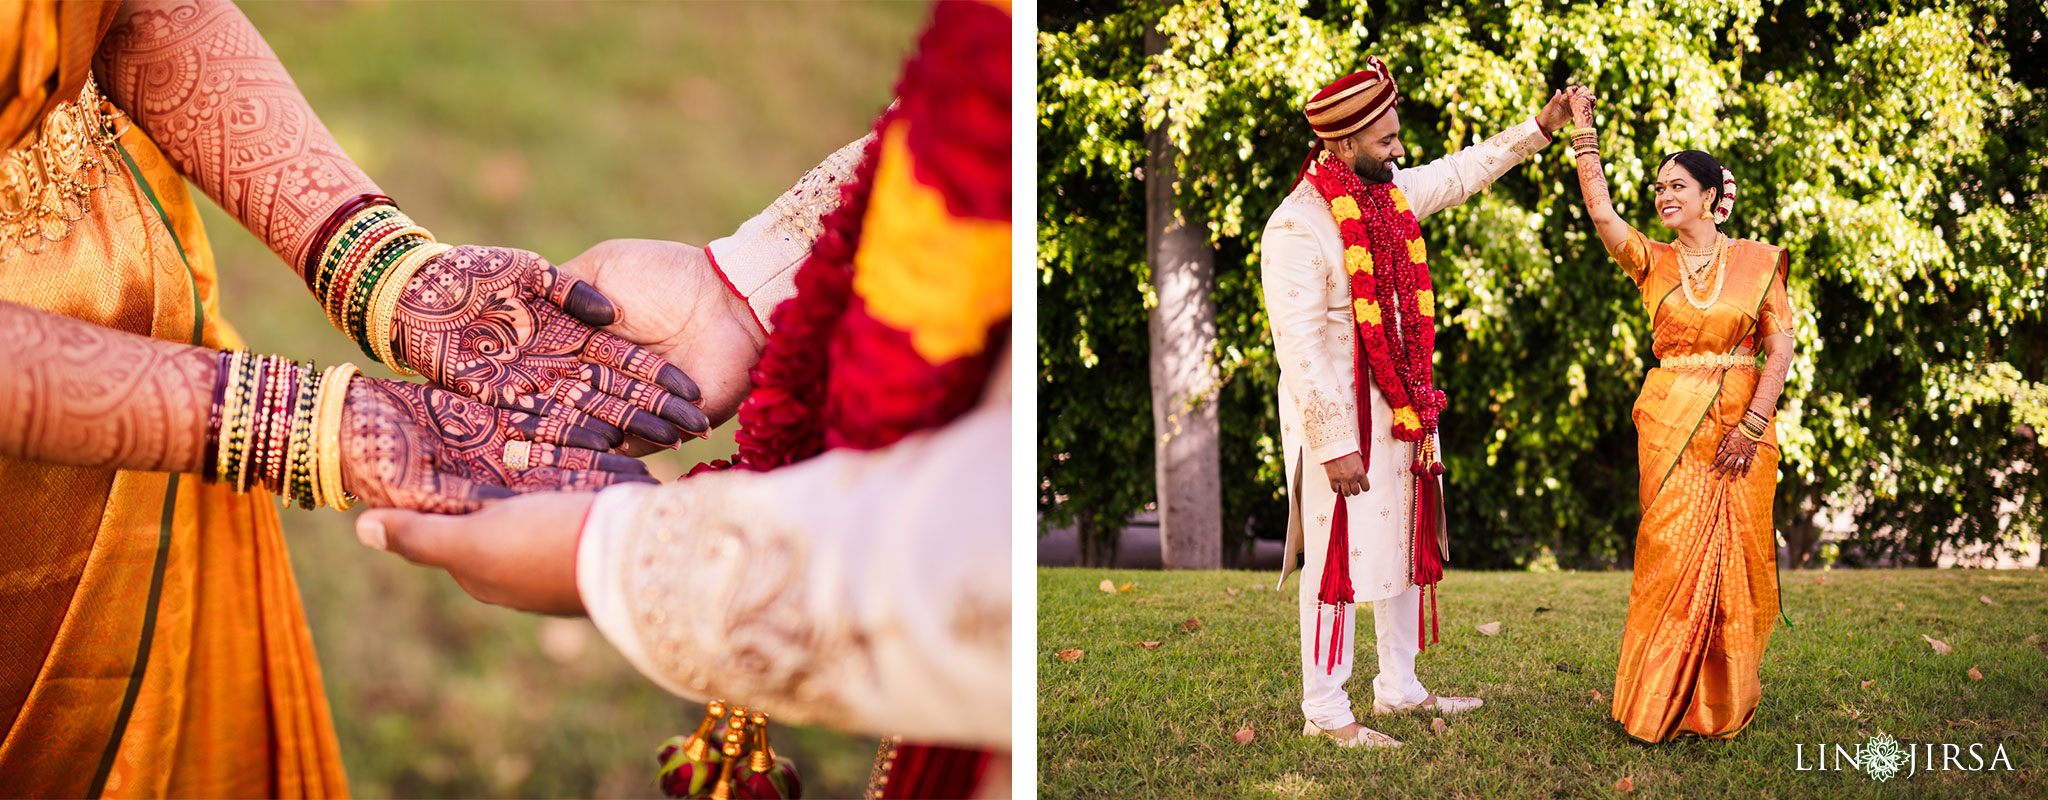 11 long beach hyatt south indian wedding photography